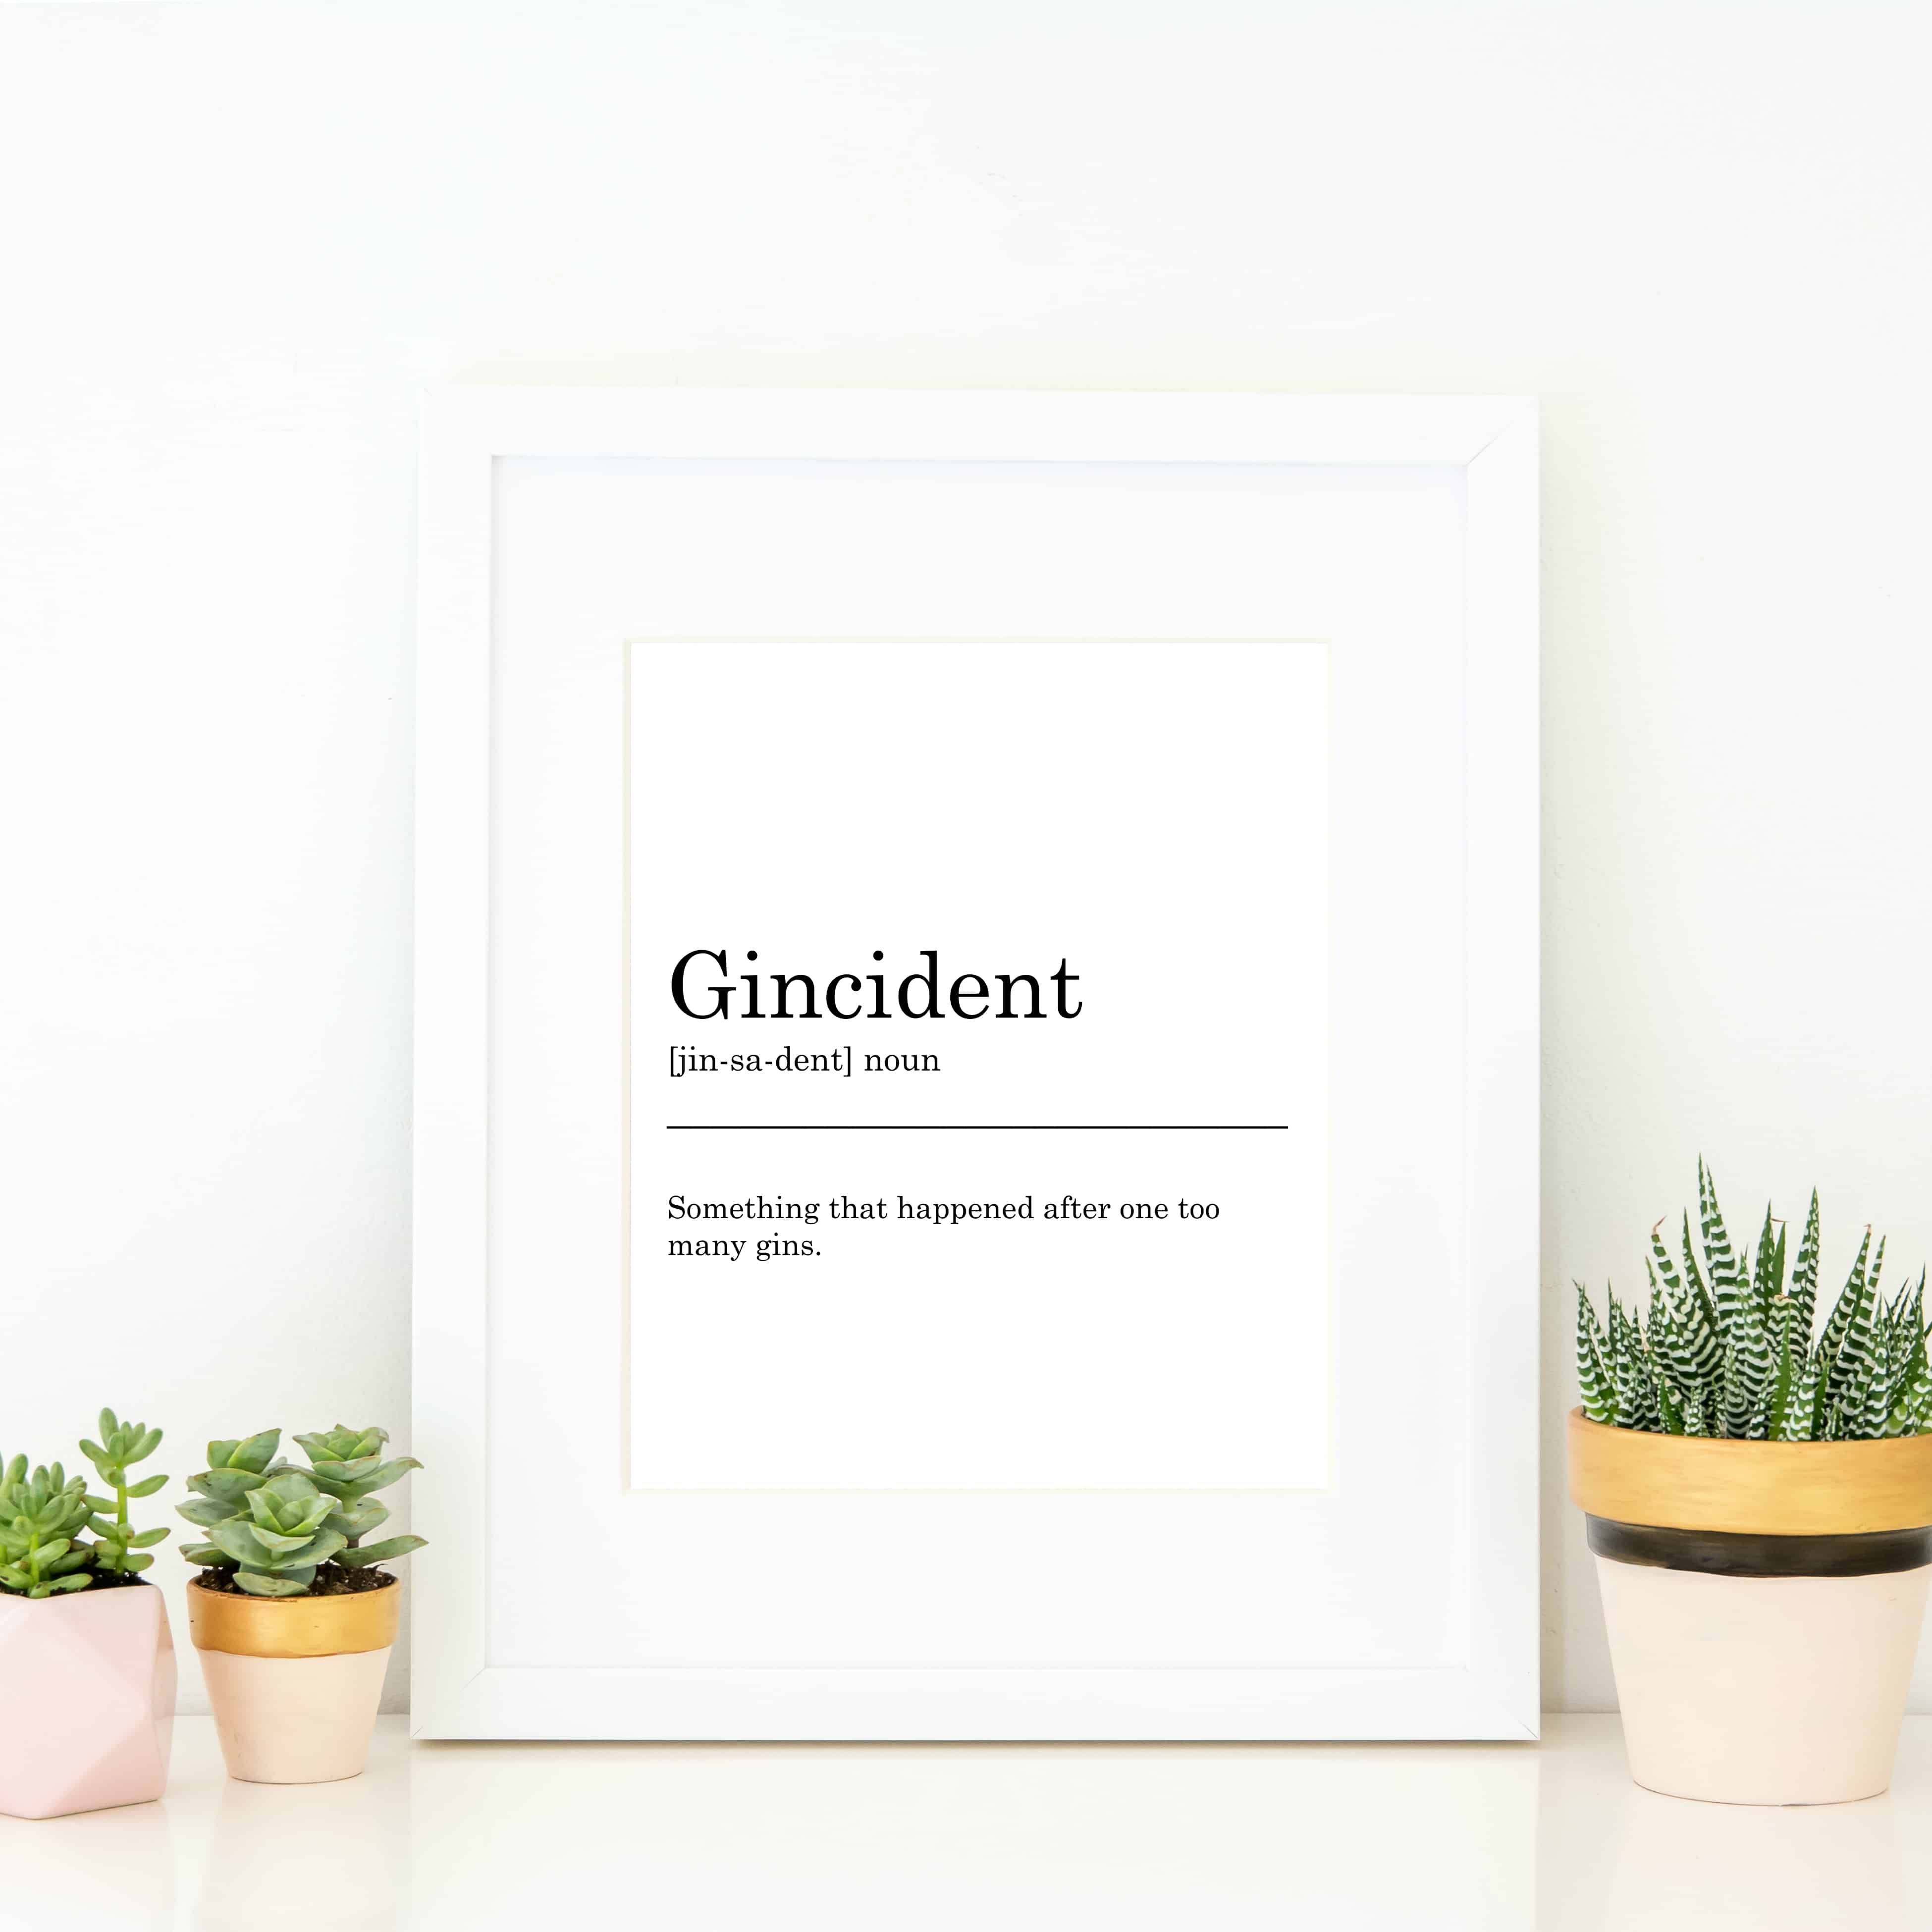 Gincident Definition Printable Wall Art For You To Print At Home And